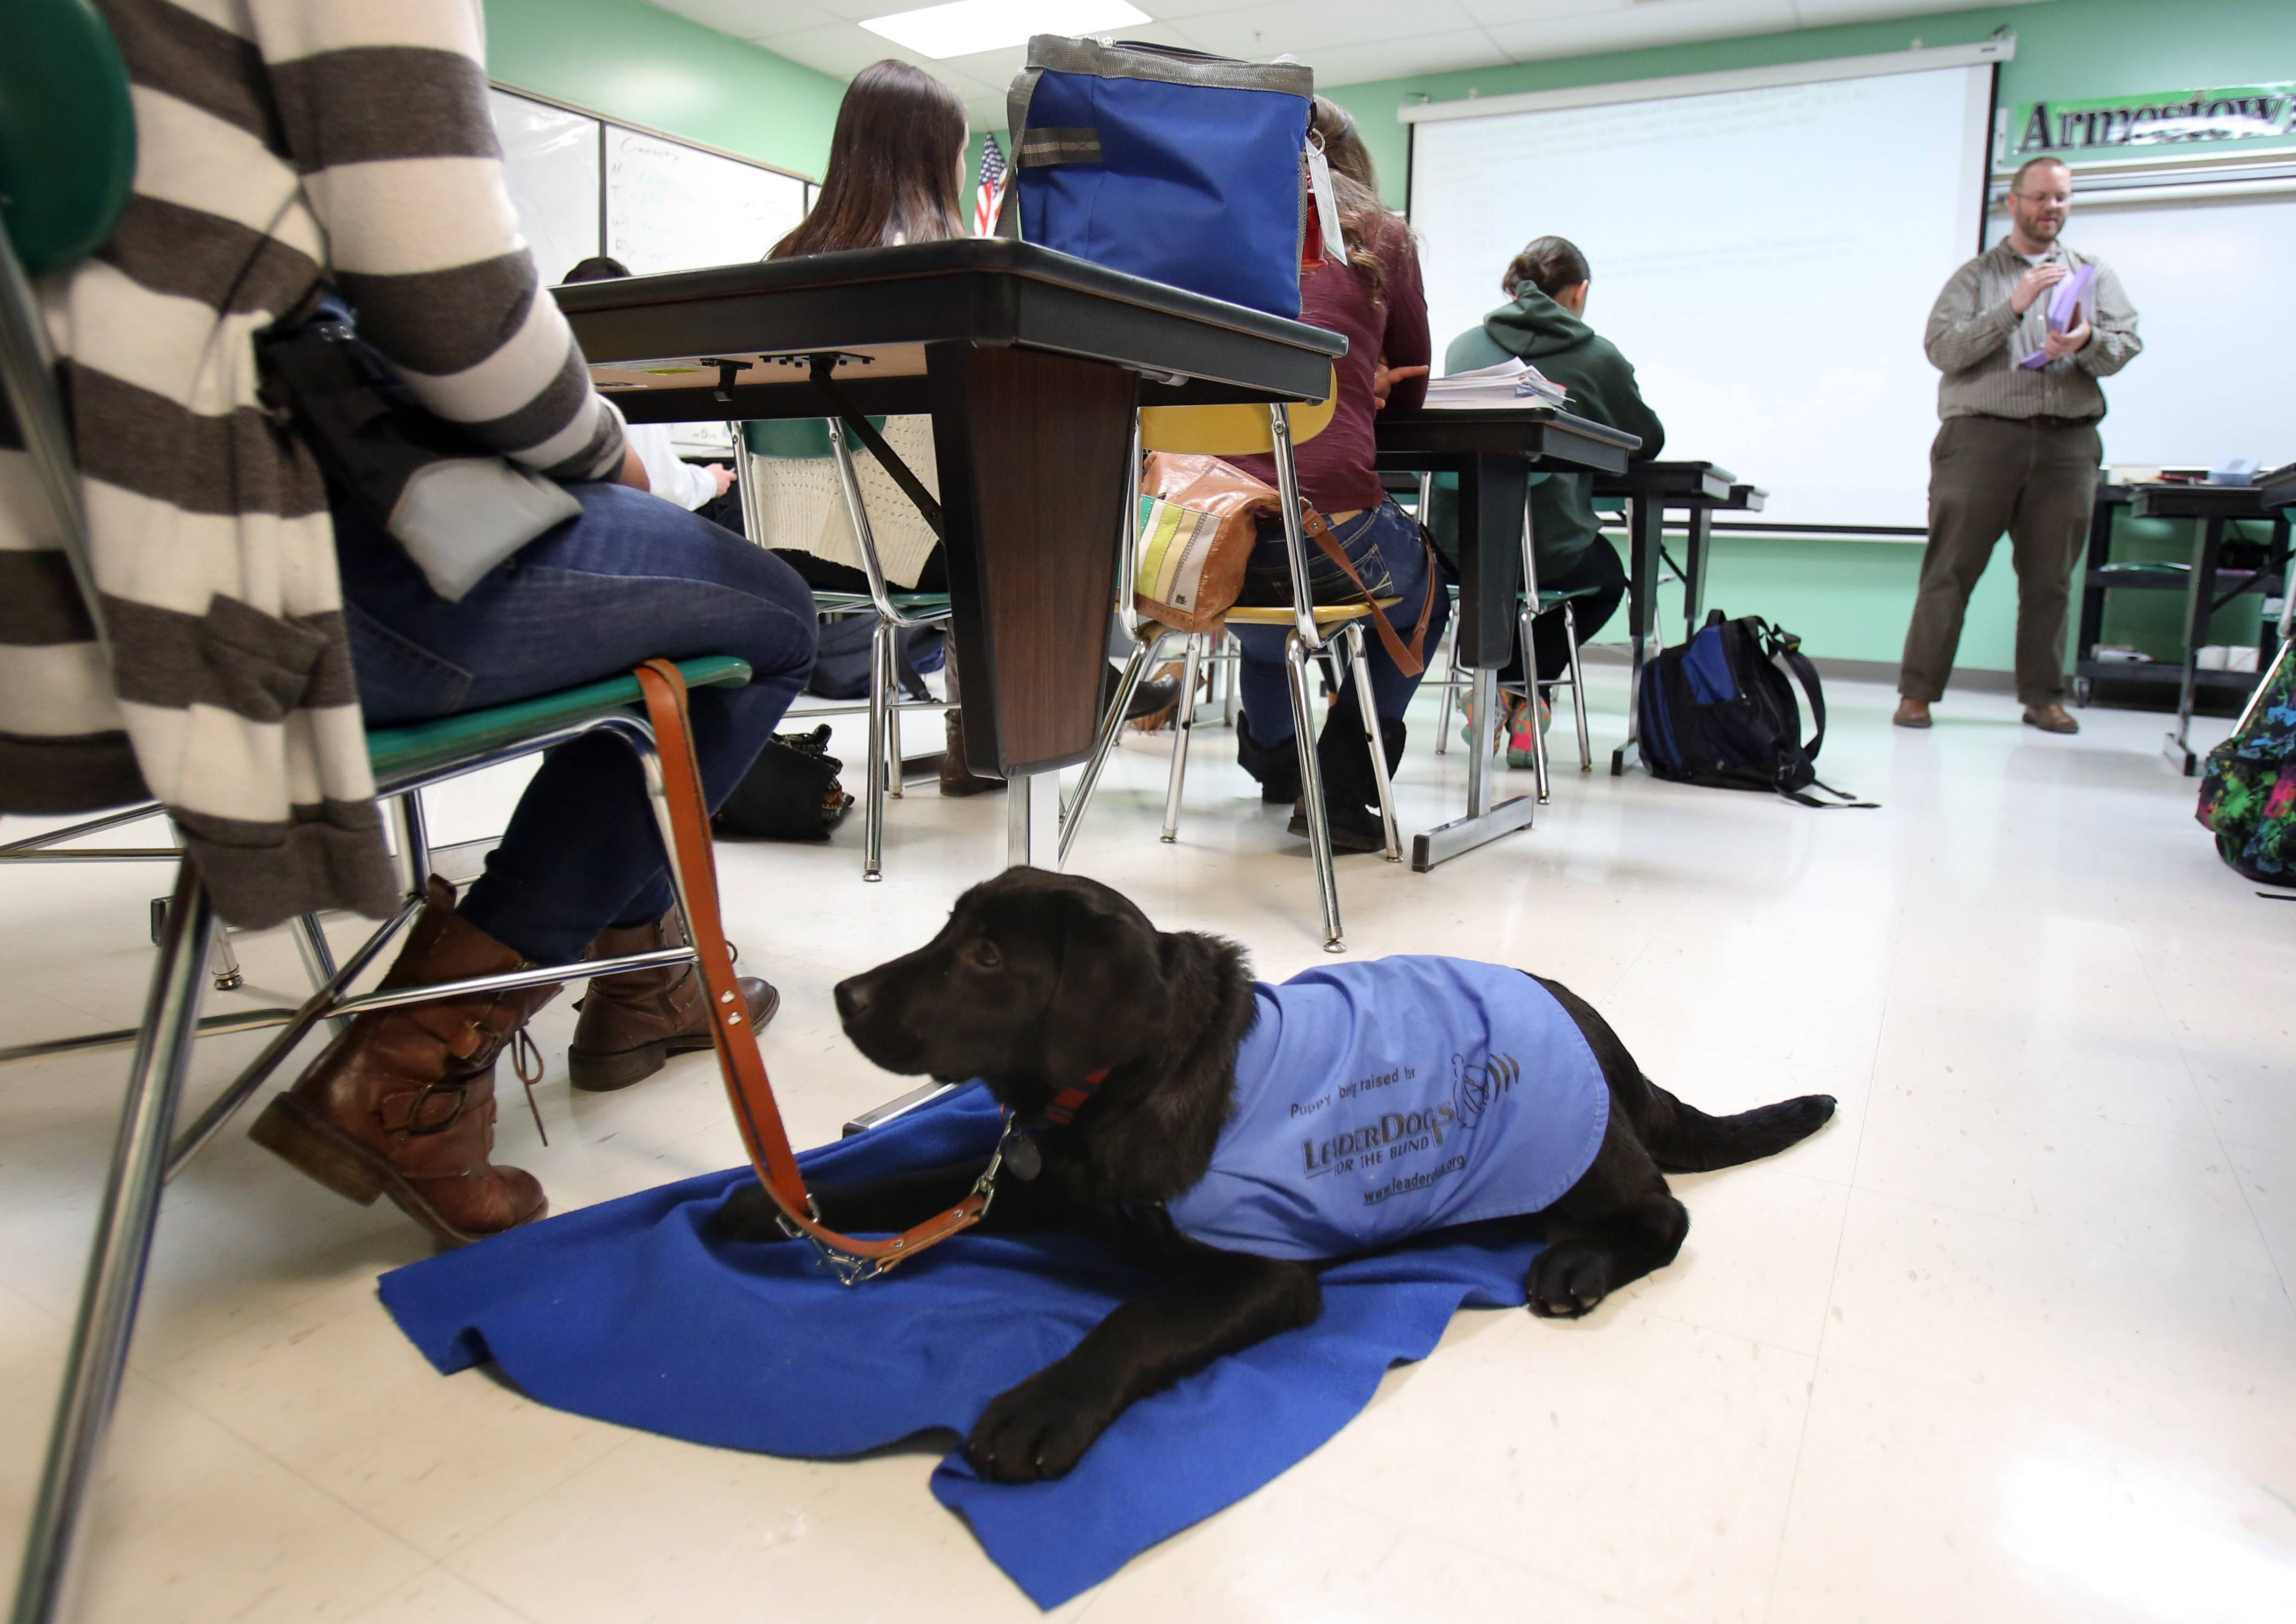 Bailey the puppy has to learn to lie quietly while in class at Grayslake Central High School and not be a distraction.